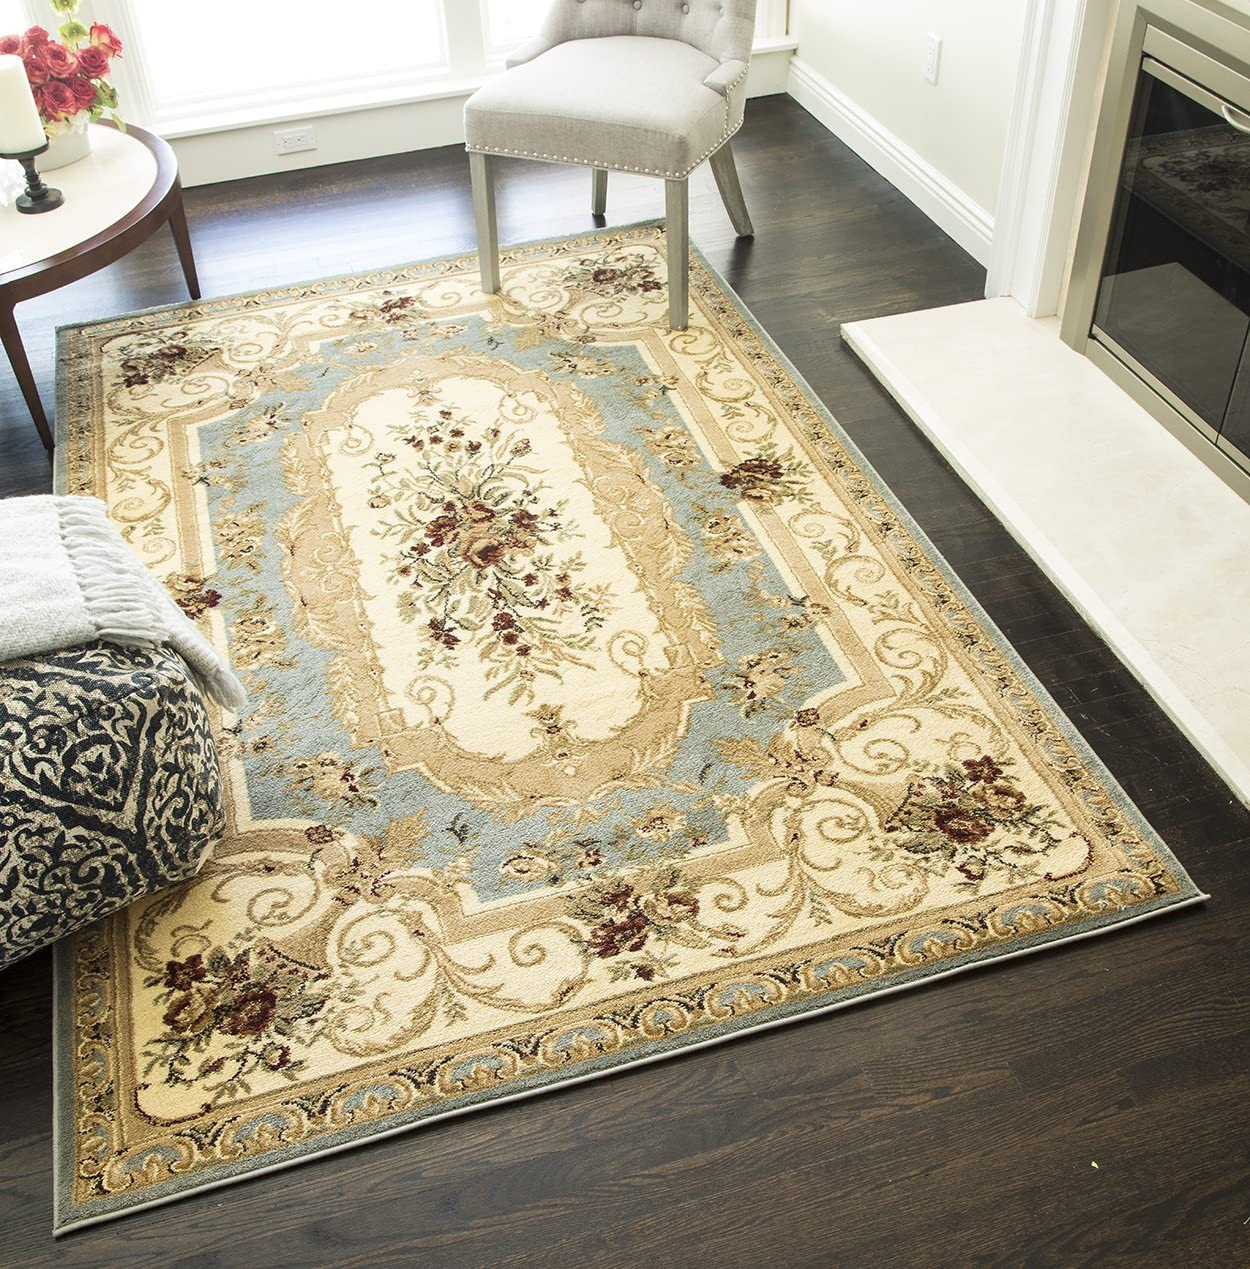 Rugs America Sorrento Area Rug, 5-Feet 3-Inch by 7-Feet 10-Inch, Aubusson Light Blue